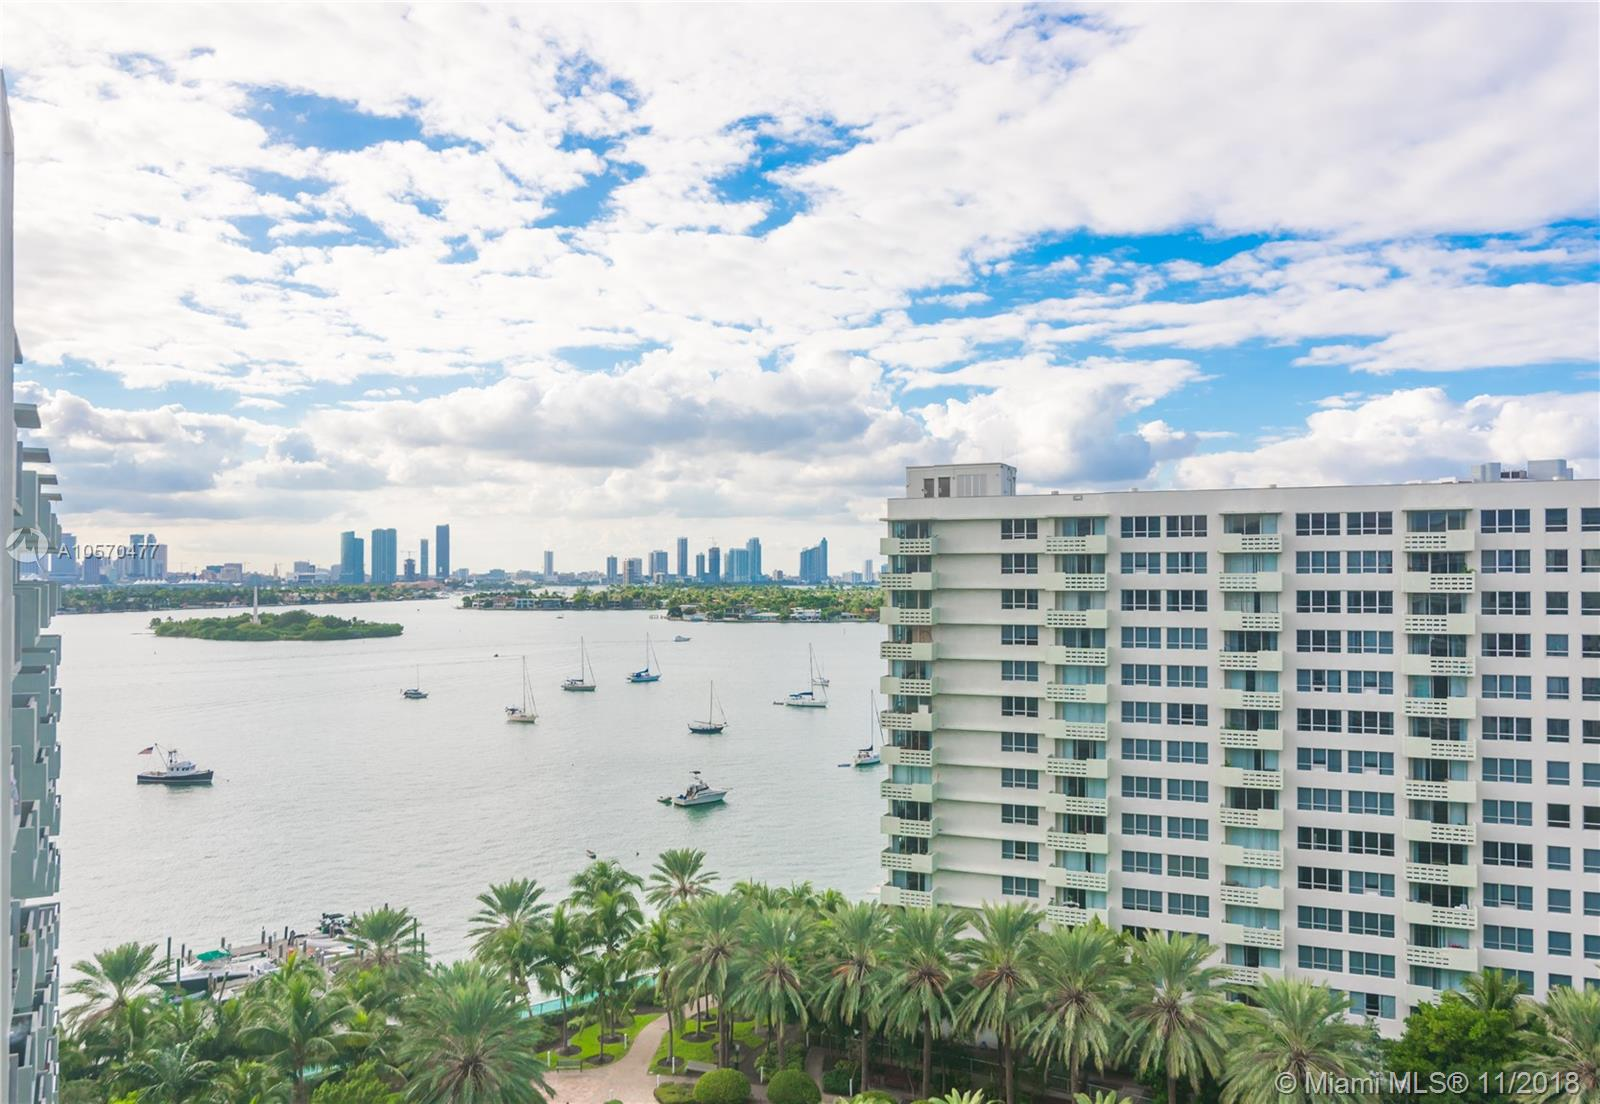 Flamingo South Beach #1454S - 1500 Bay Rd #1454S, Miami Beach, FL 33139